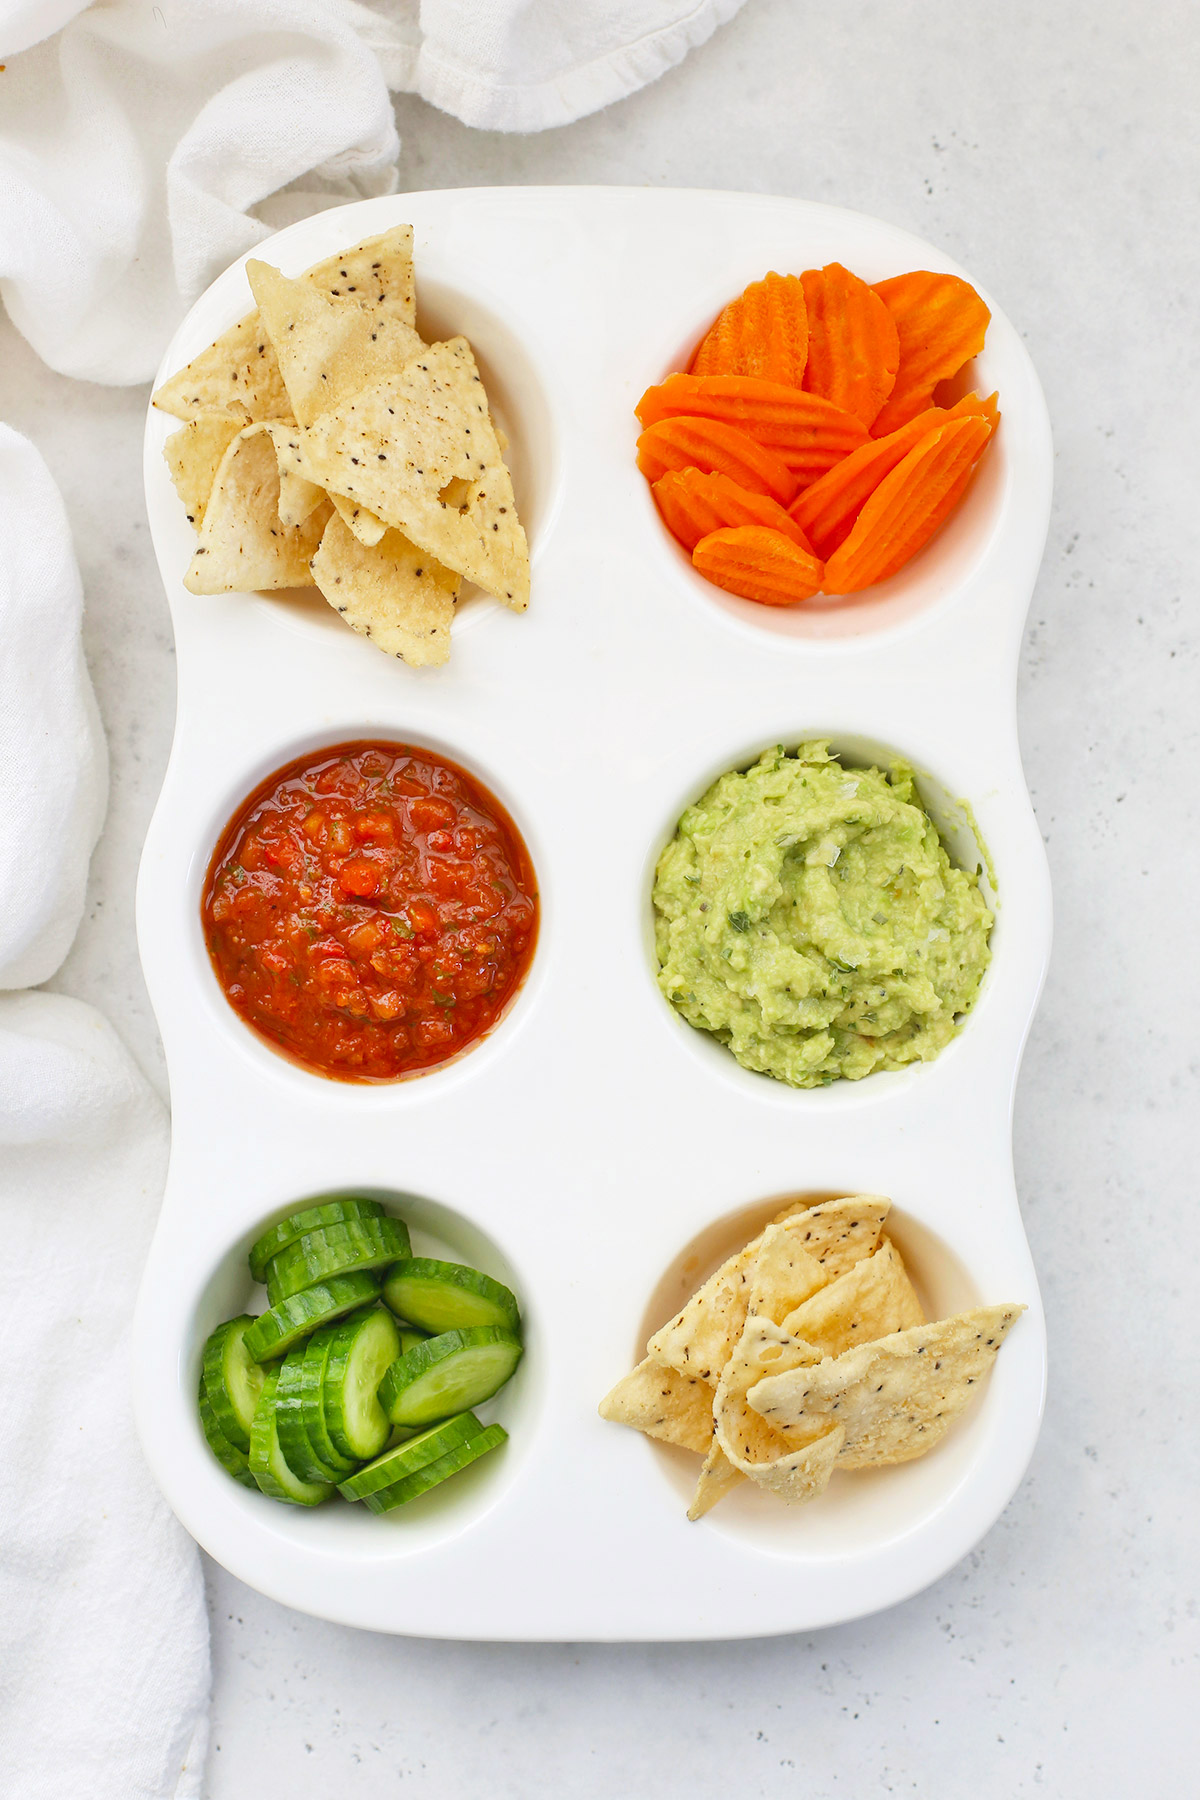 Muffin Tin Snack Tray For Kids with Grain-Free Tortilla Chips, Carrot Chips, Salsa, Guacamole, and Cucumber Slices